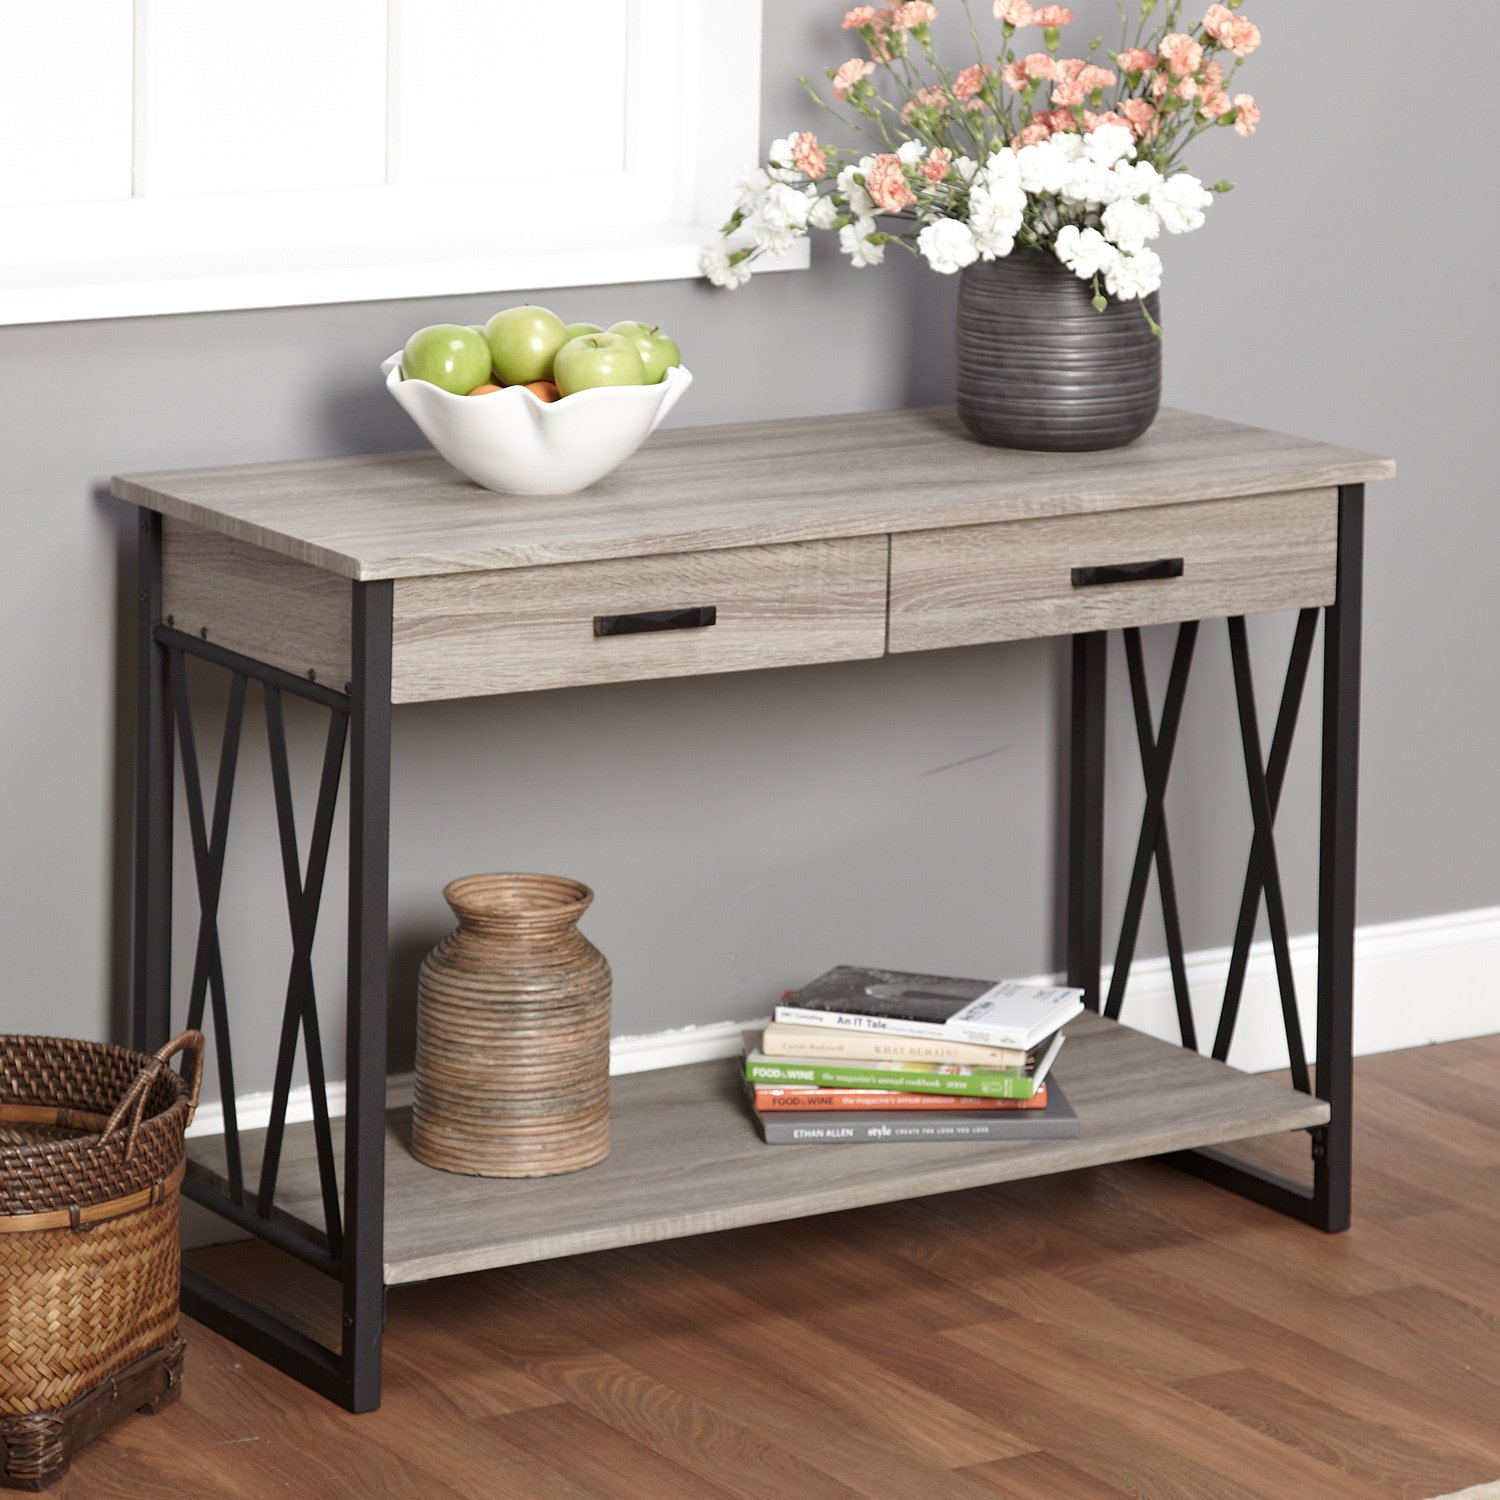 Console sofa table living home furniture decor room - Decor house furniture ...